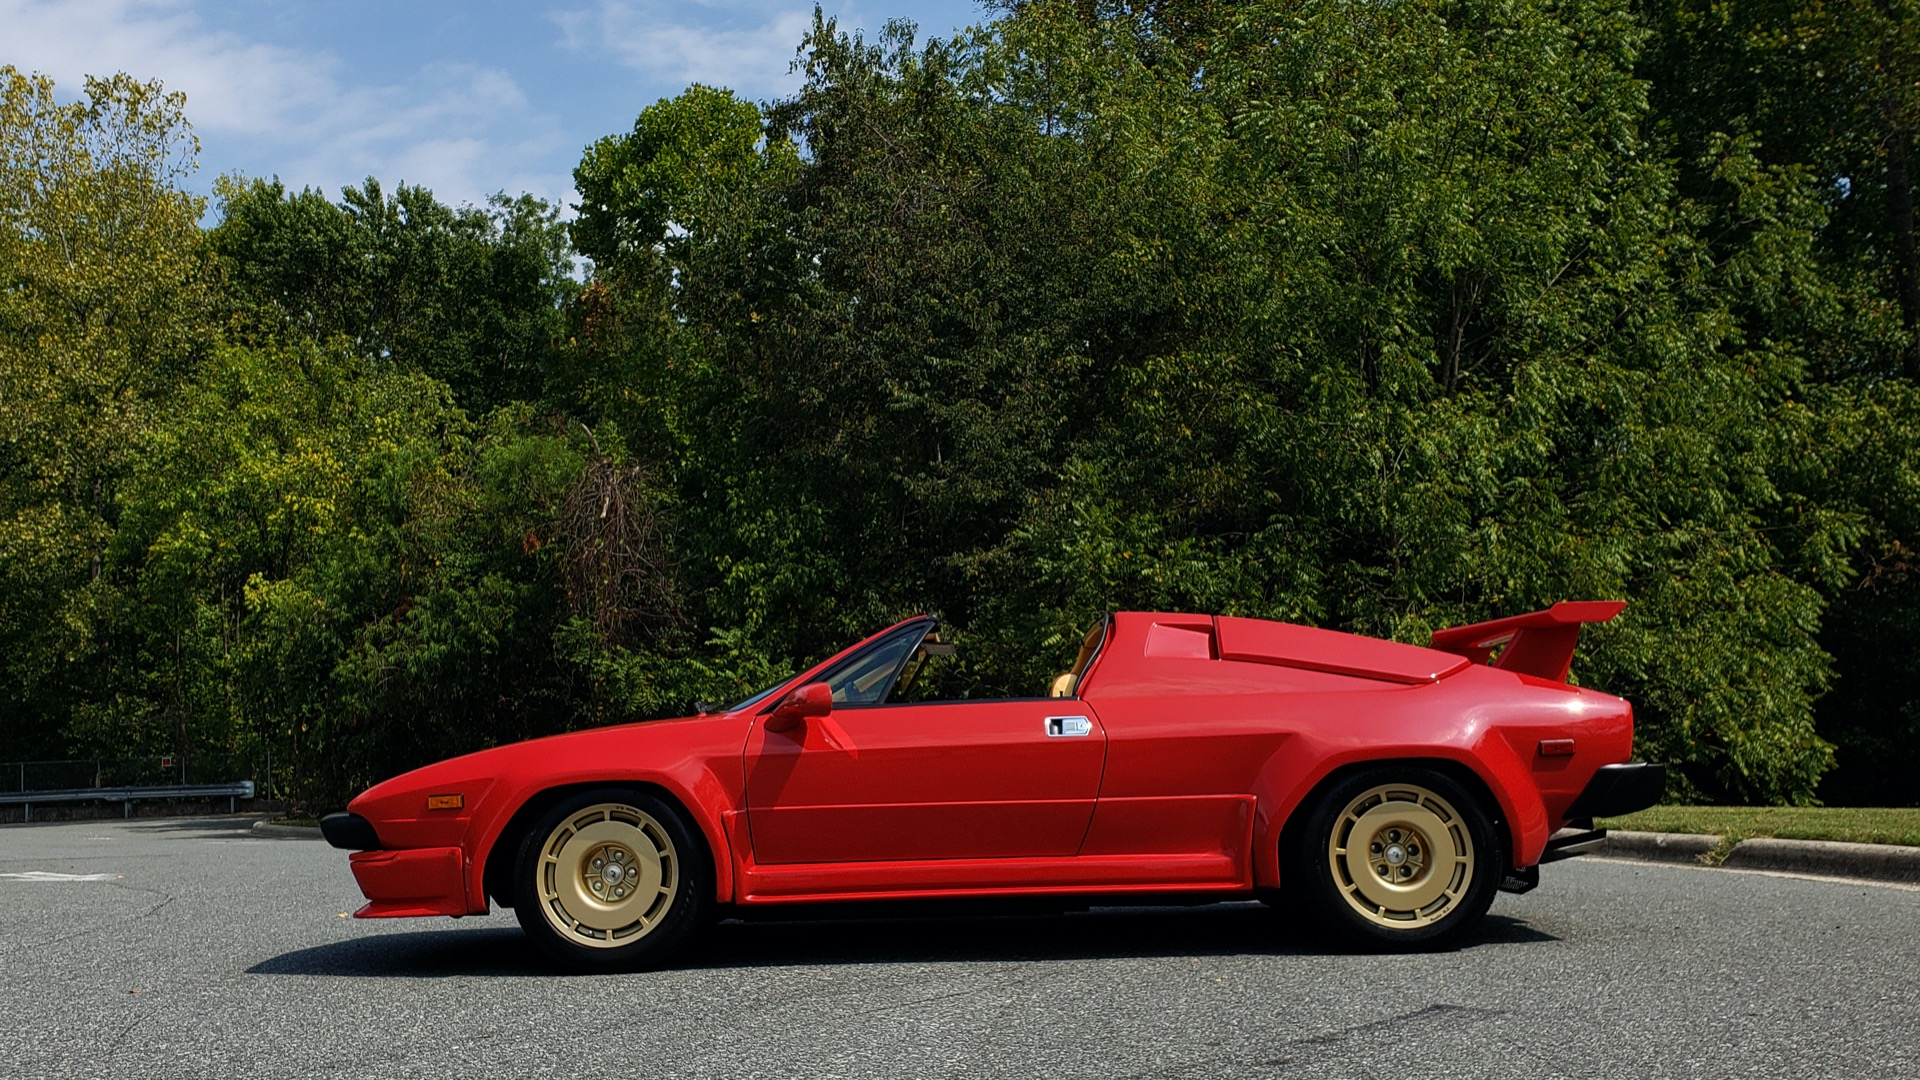 Used 1988 Lamborghini Jalpa 3.5 / 5-Speed Man / Low Miles / Excellent Condition for sale $108,995 at Formula Imports in Charlotte NC 28227 22